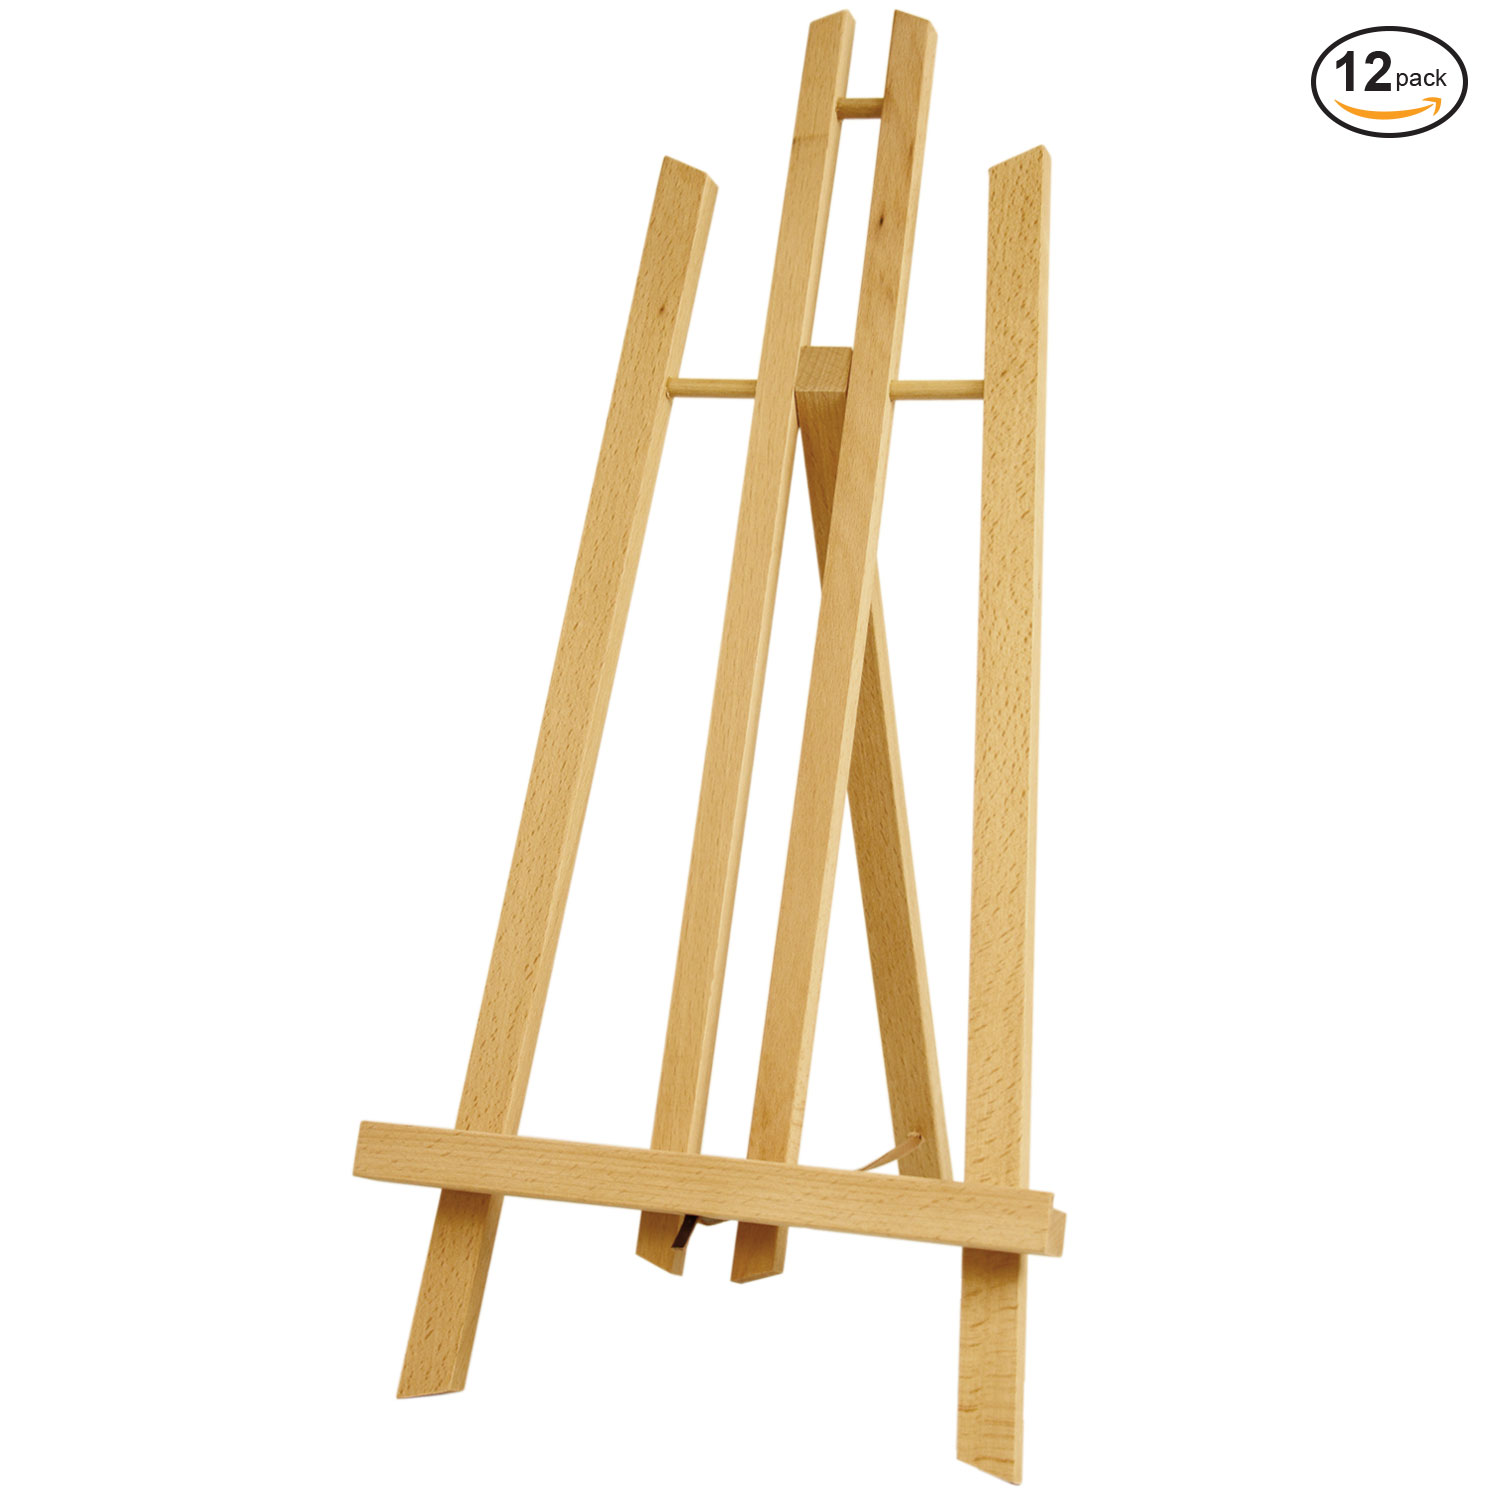 12 Pack of US Art Supply® Large Tabletop Display A-Frame Artist Easel Painting